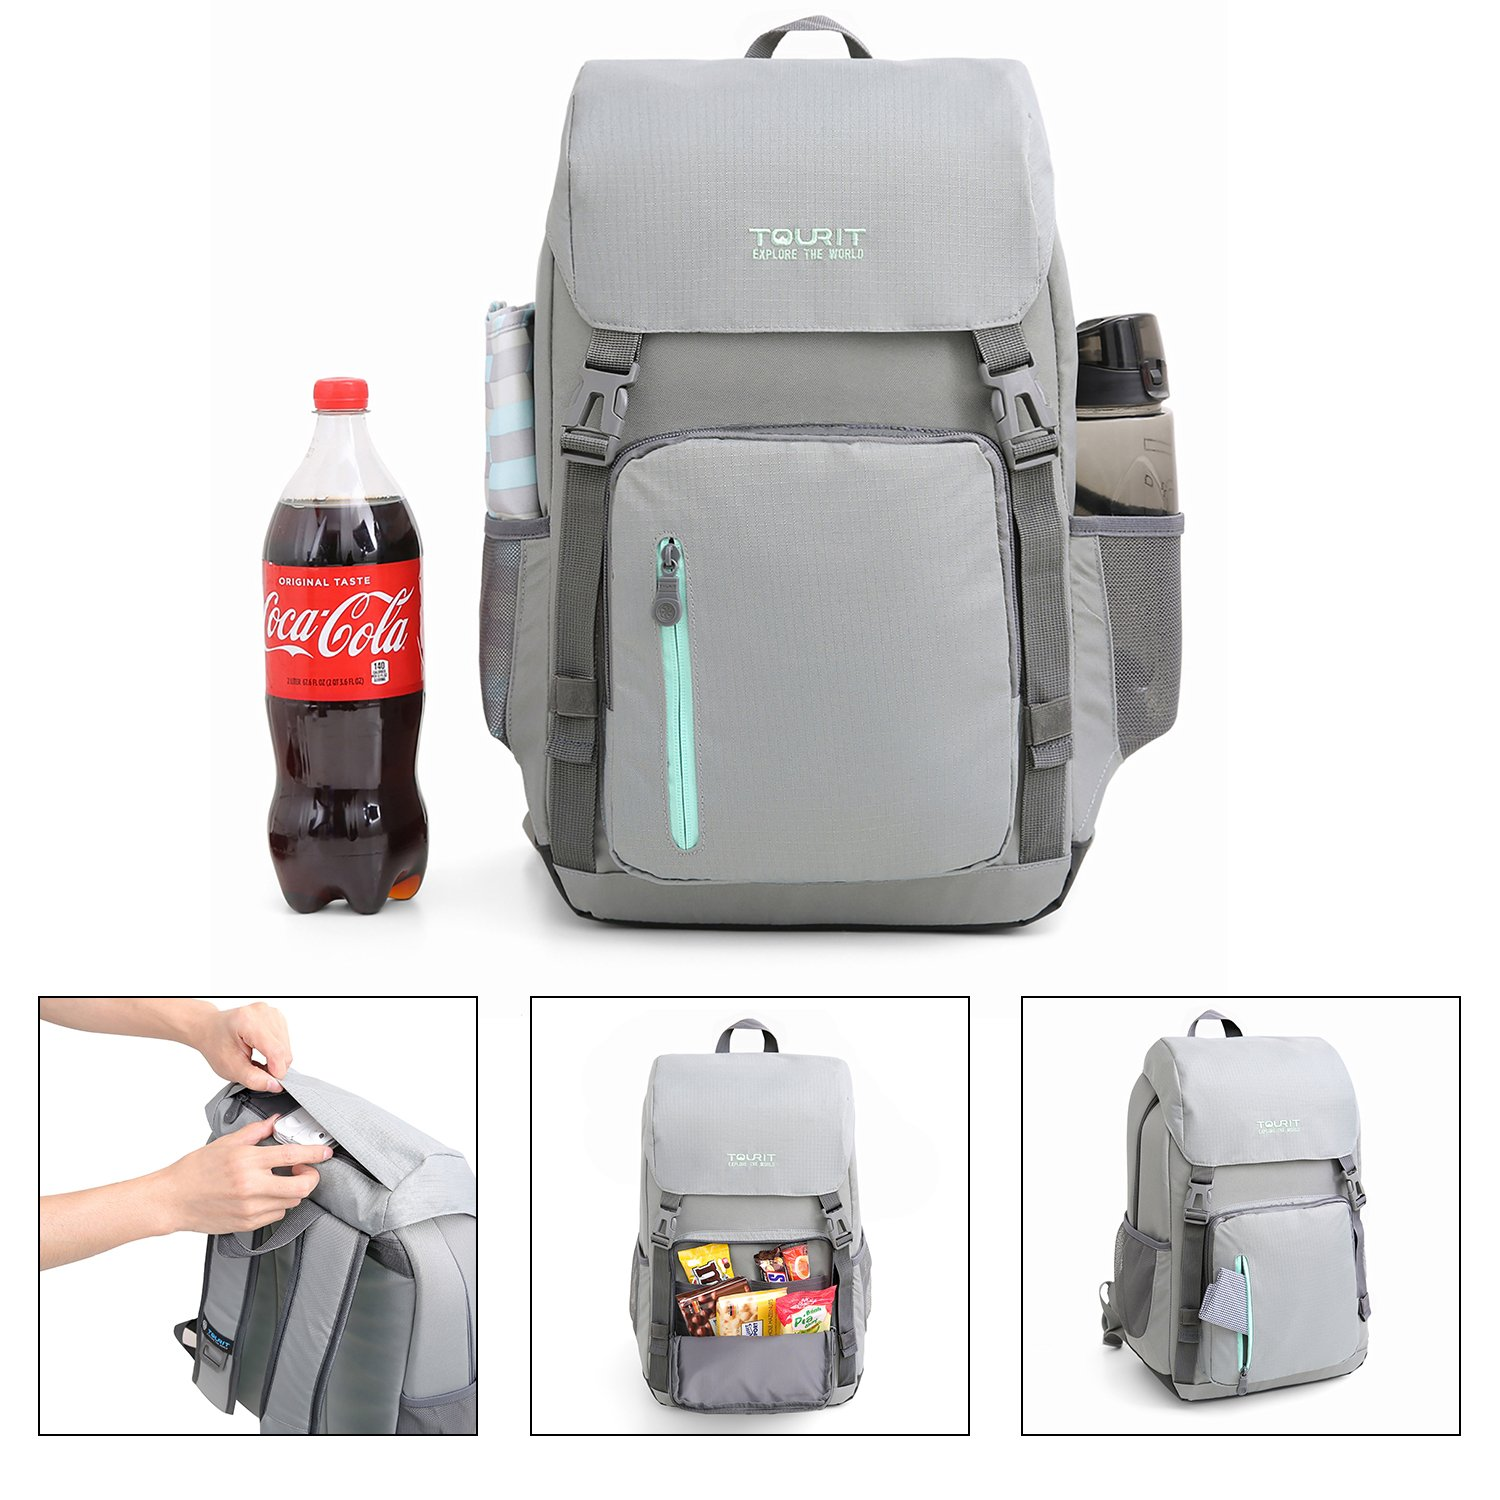 5ac0ce7bf4 TOURIT Hiking Backpack with Cooler 25L Lightweight Cool Bag Rucksack with  Bottle Opener for Camping Picnics ...